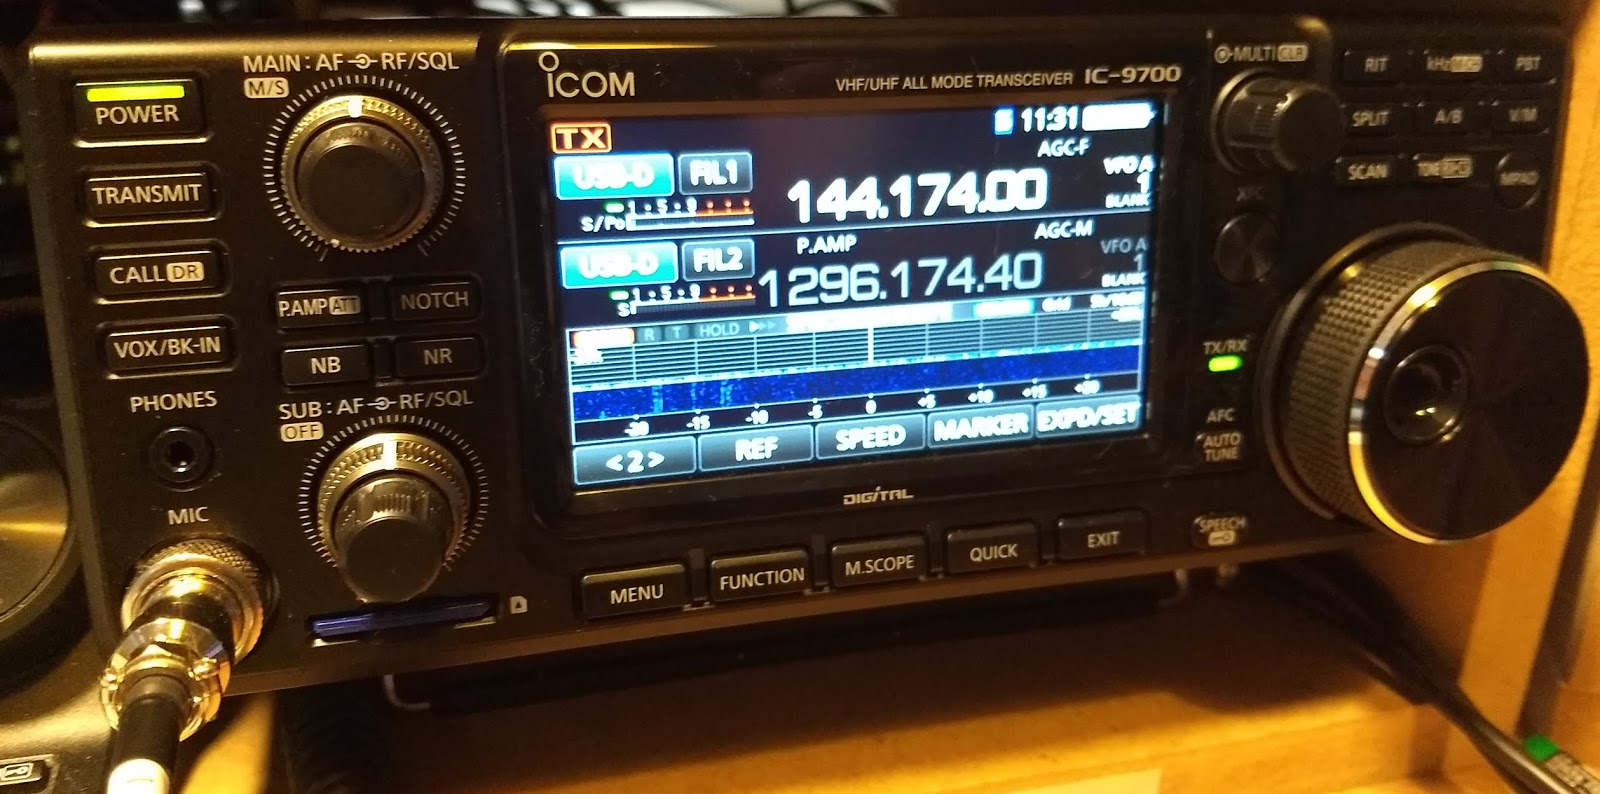 GM4FVM's radio world: IC-9700 first look